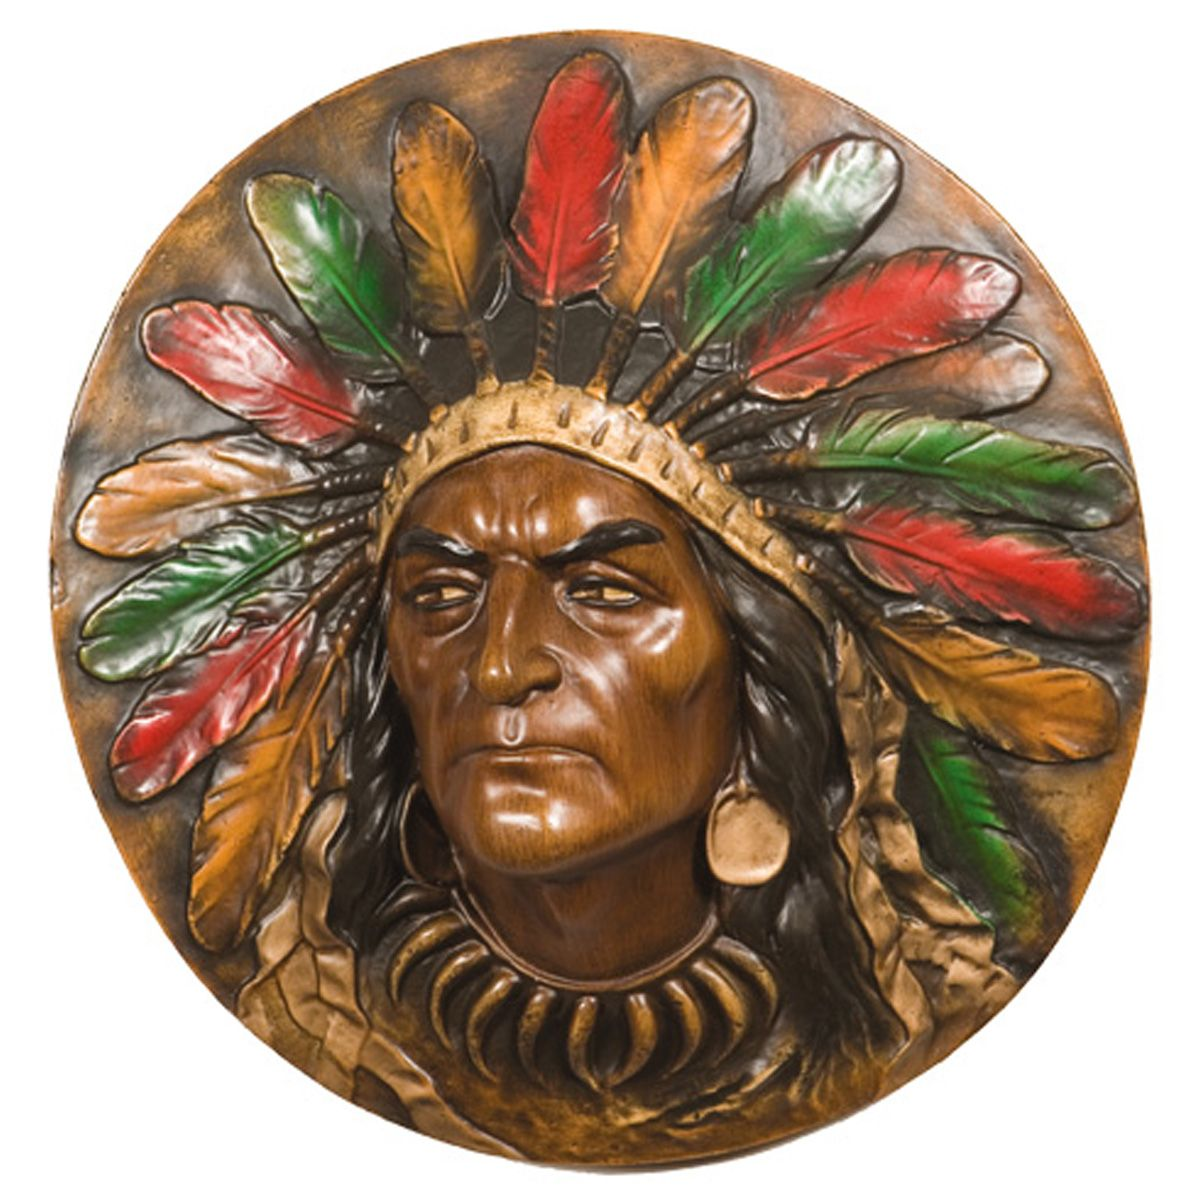 Stoic Chief Wall Plaque